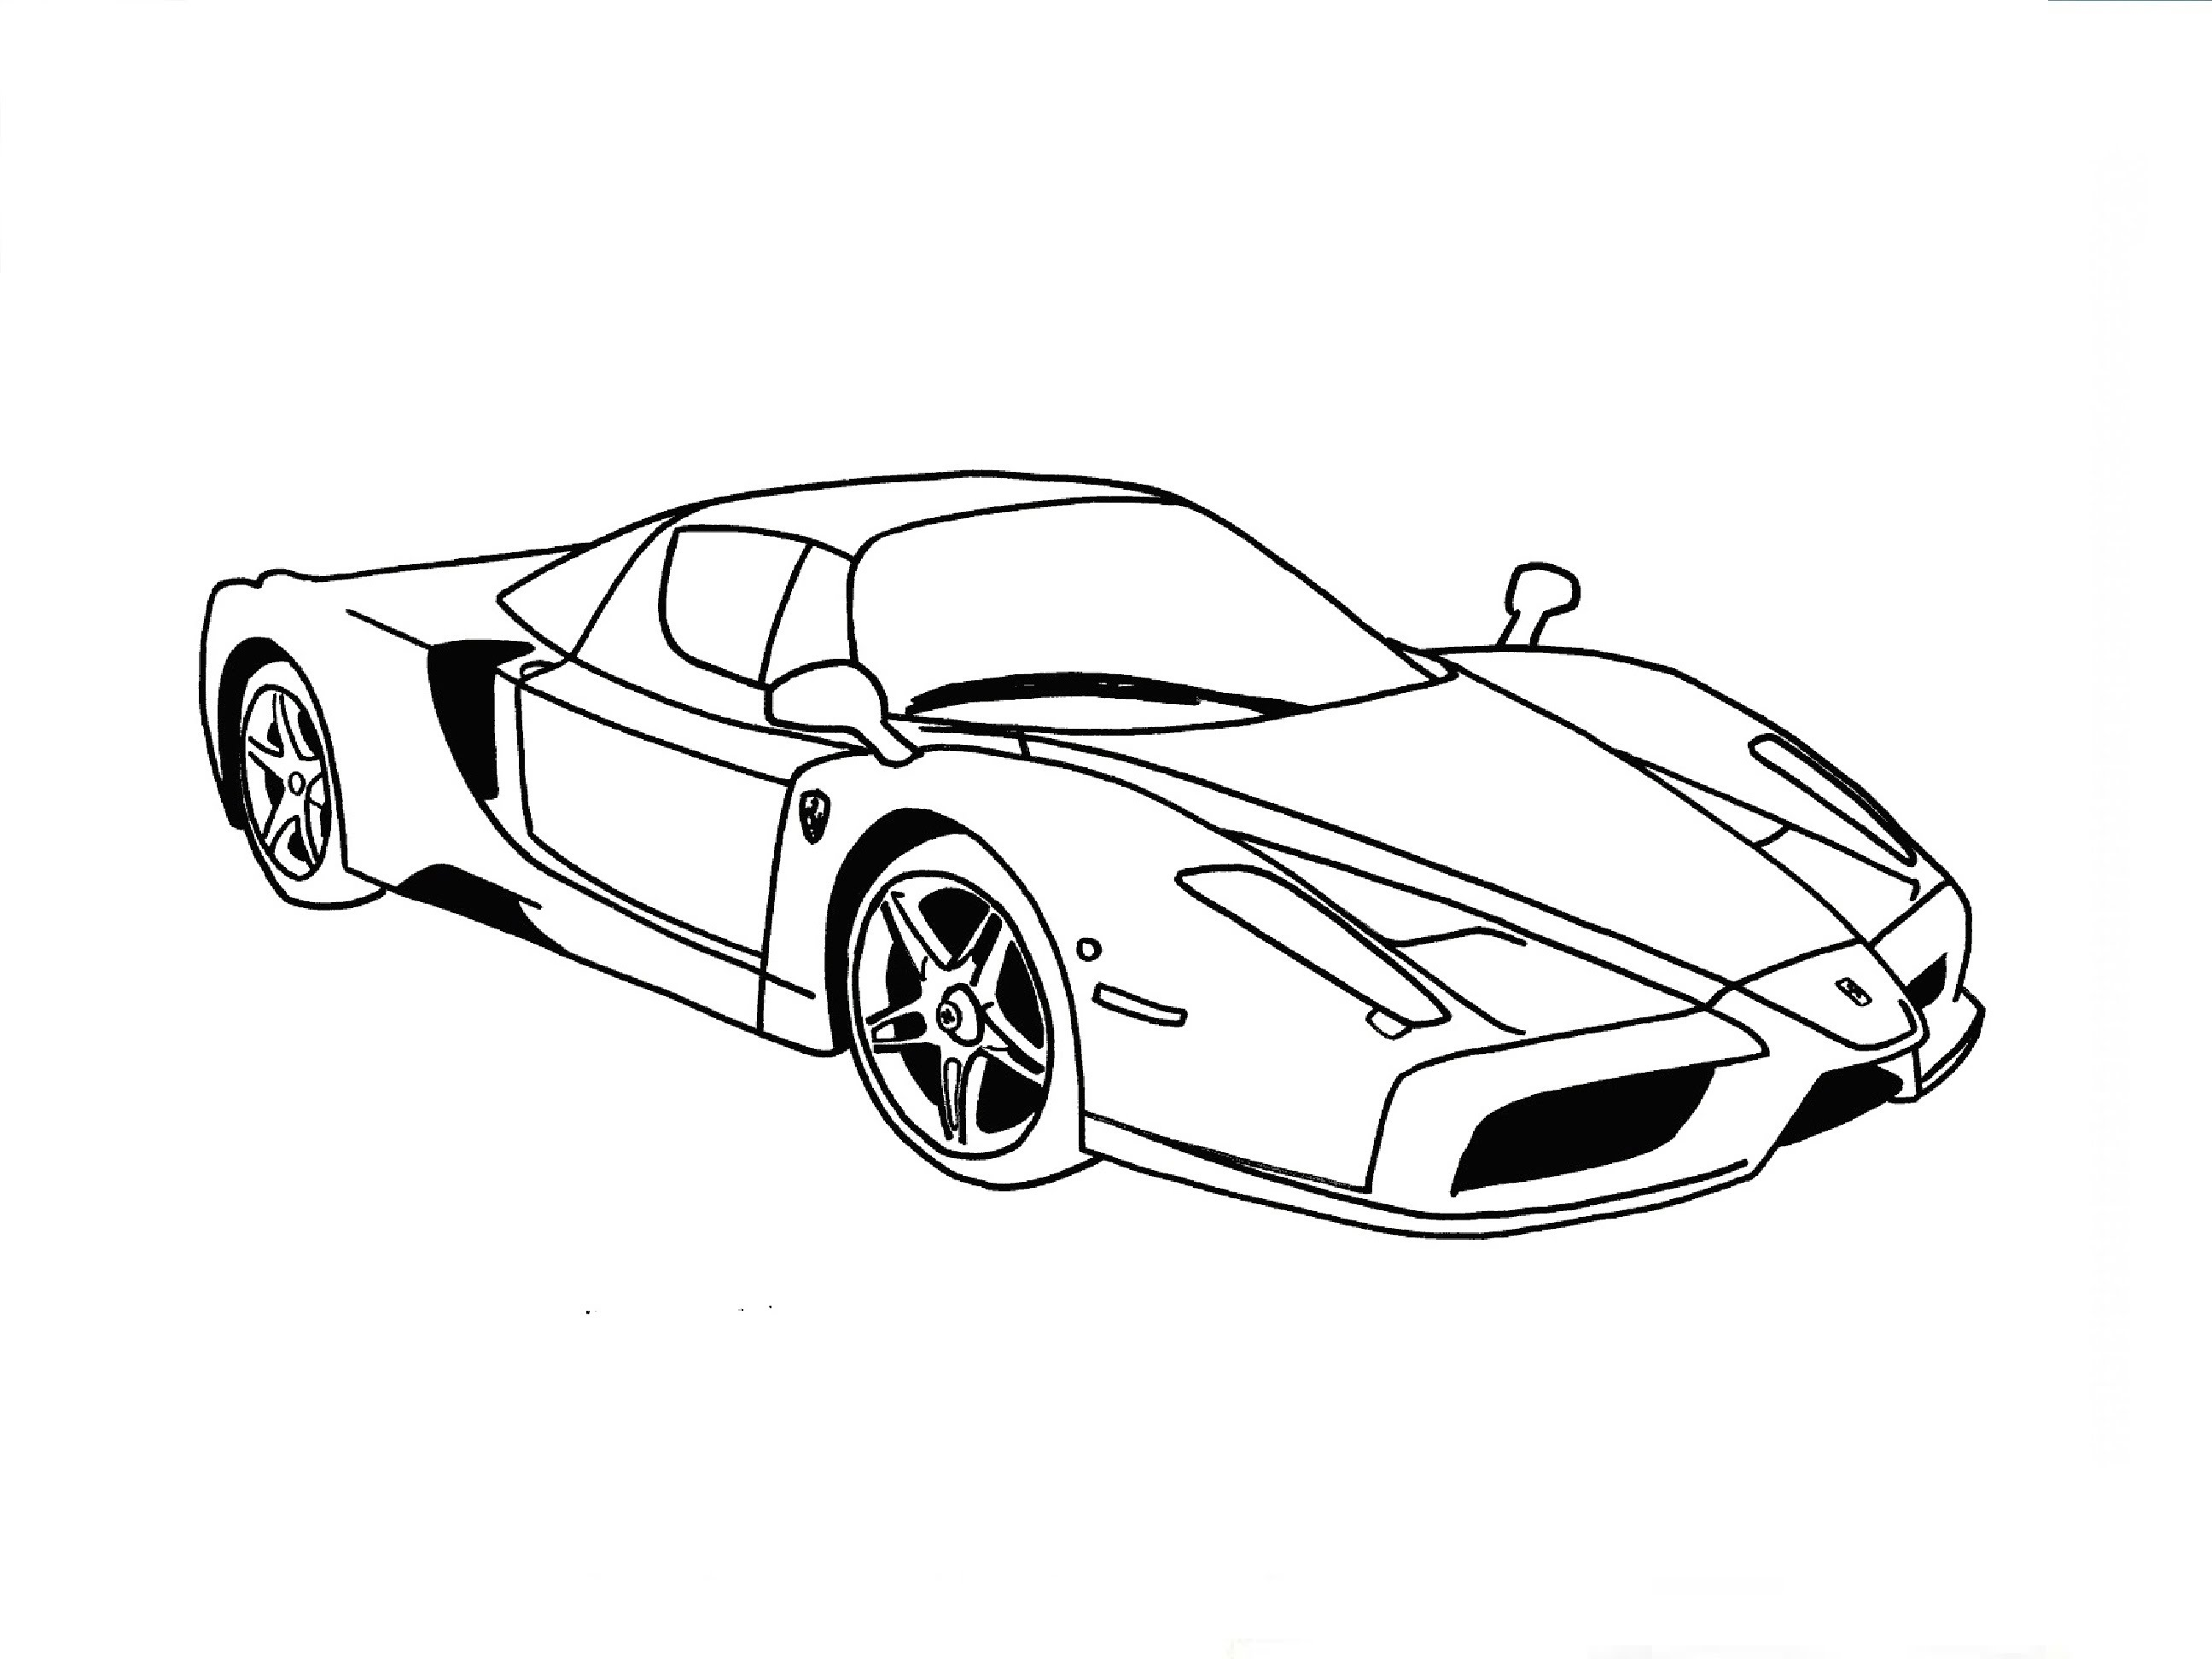 Auto Ausmalbilder Cars : Easy Race Car Drawing At Getdrawings Com Free For Personal Use